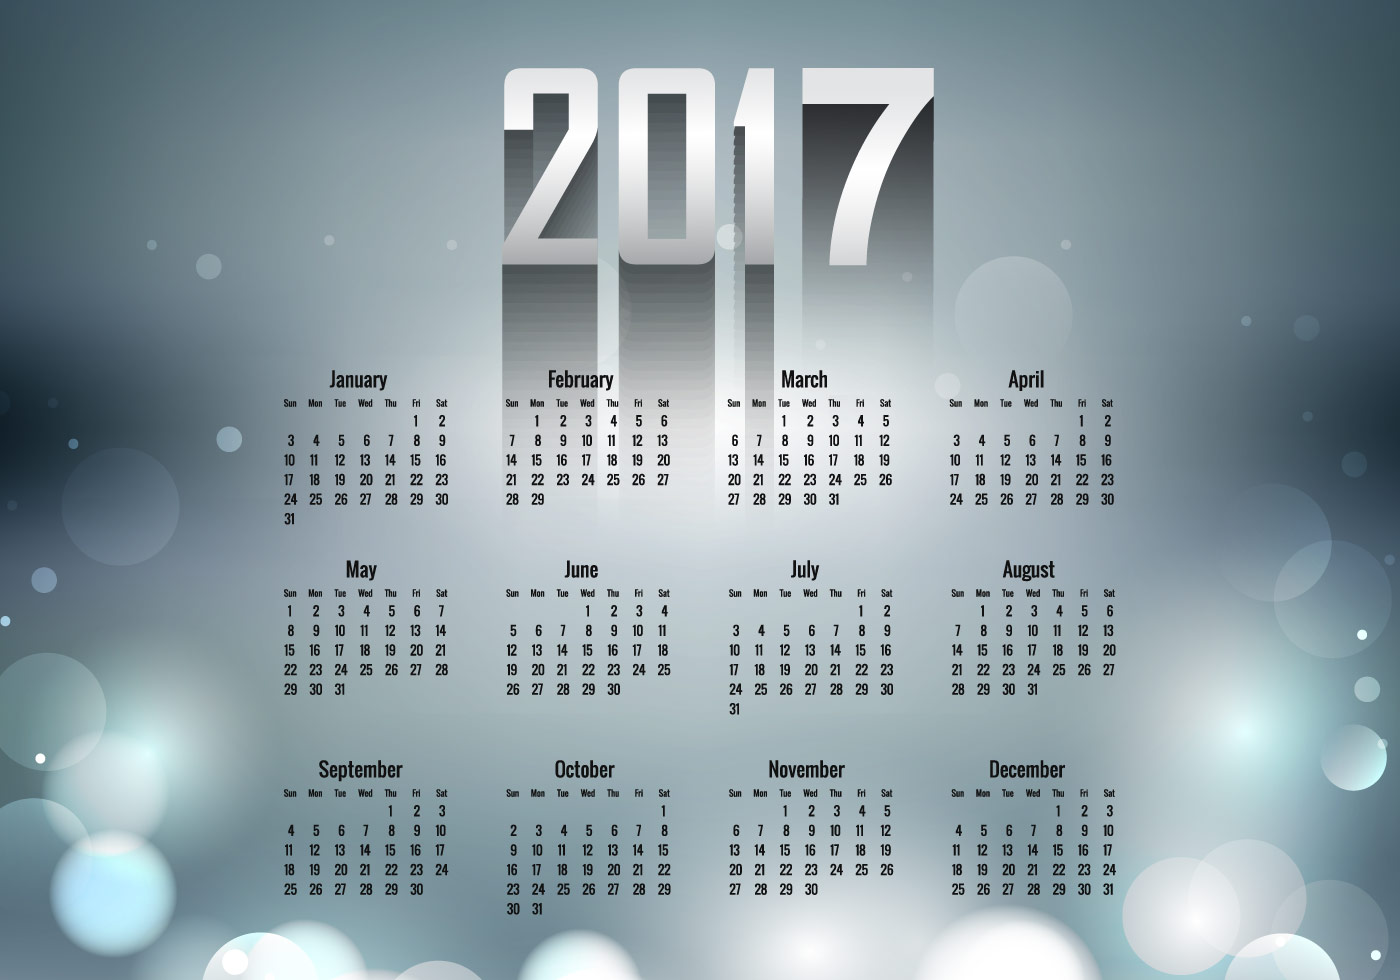 year 2017 calendar with grey color